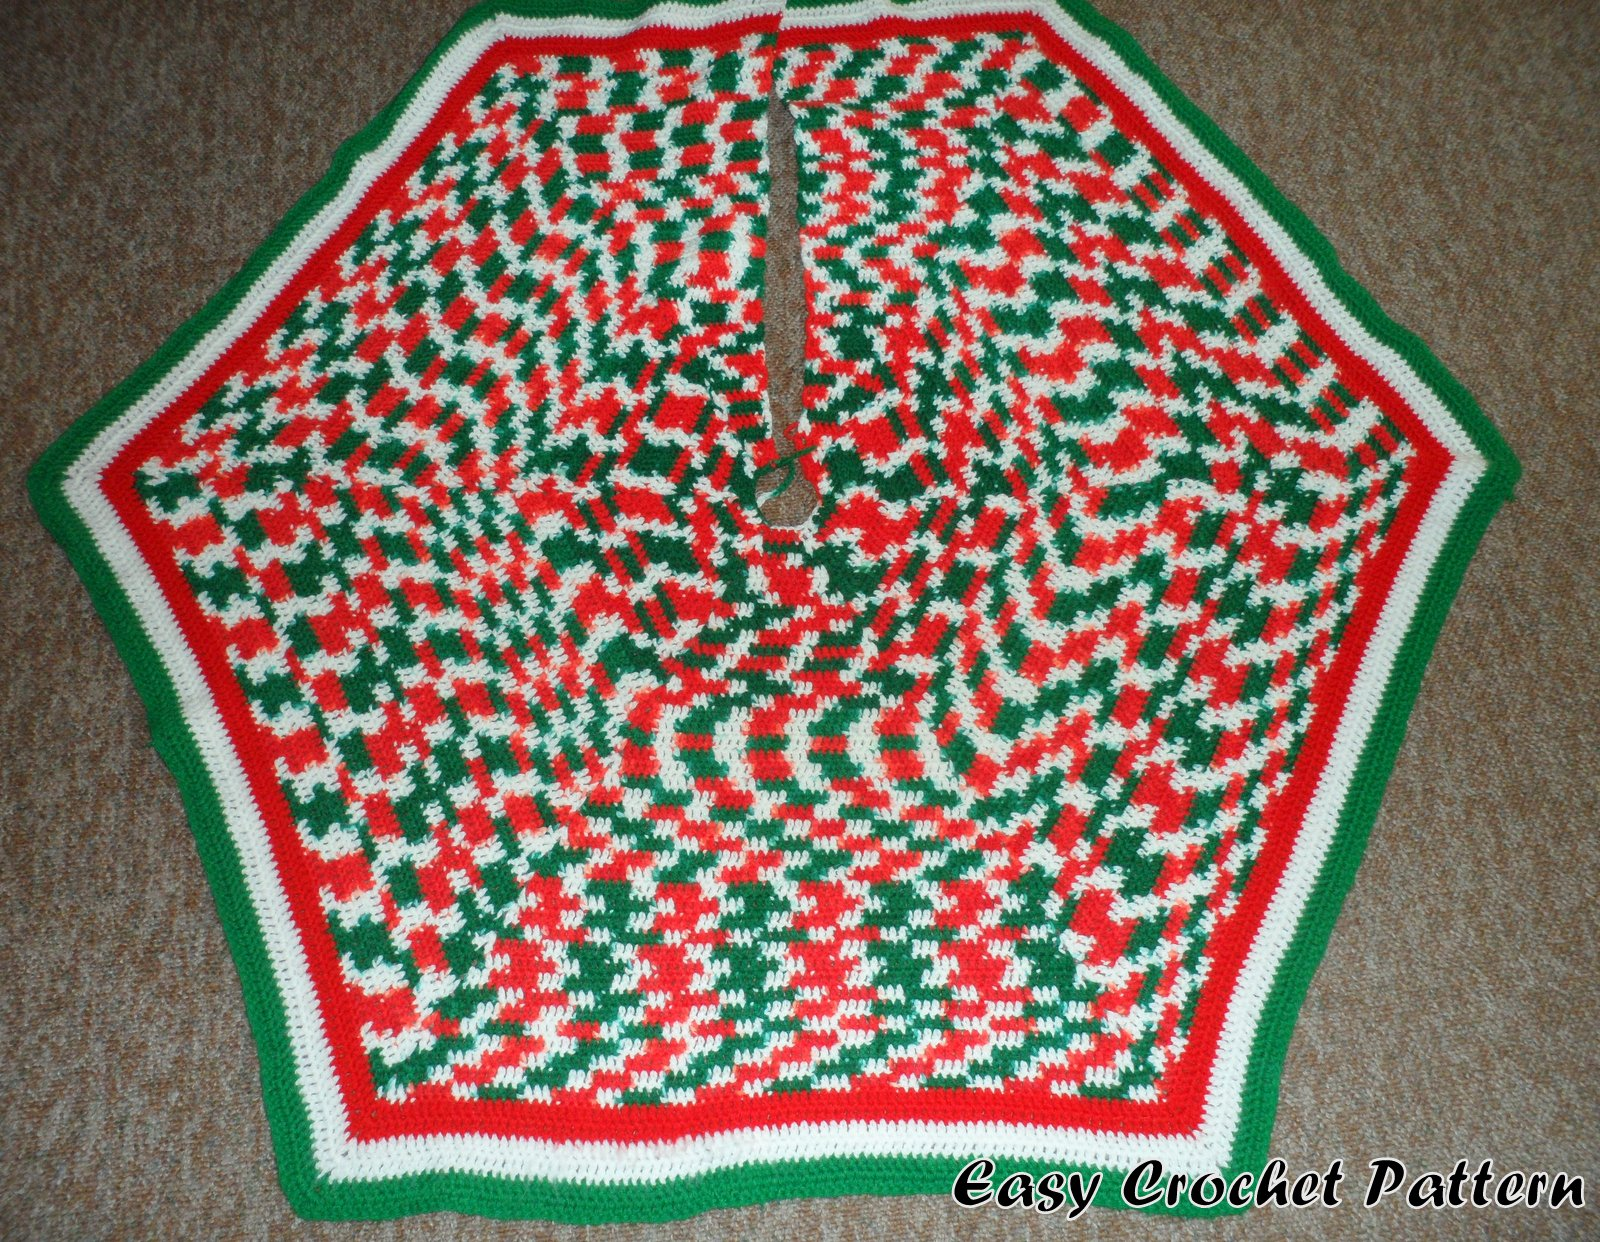 Easy Crochet Pattern Easy Crocheted Hexagon Christmas Tree Skirt